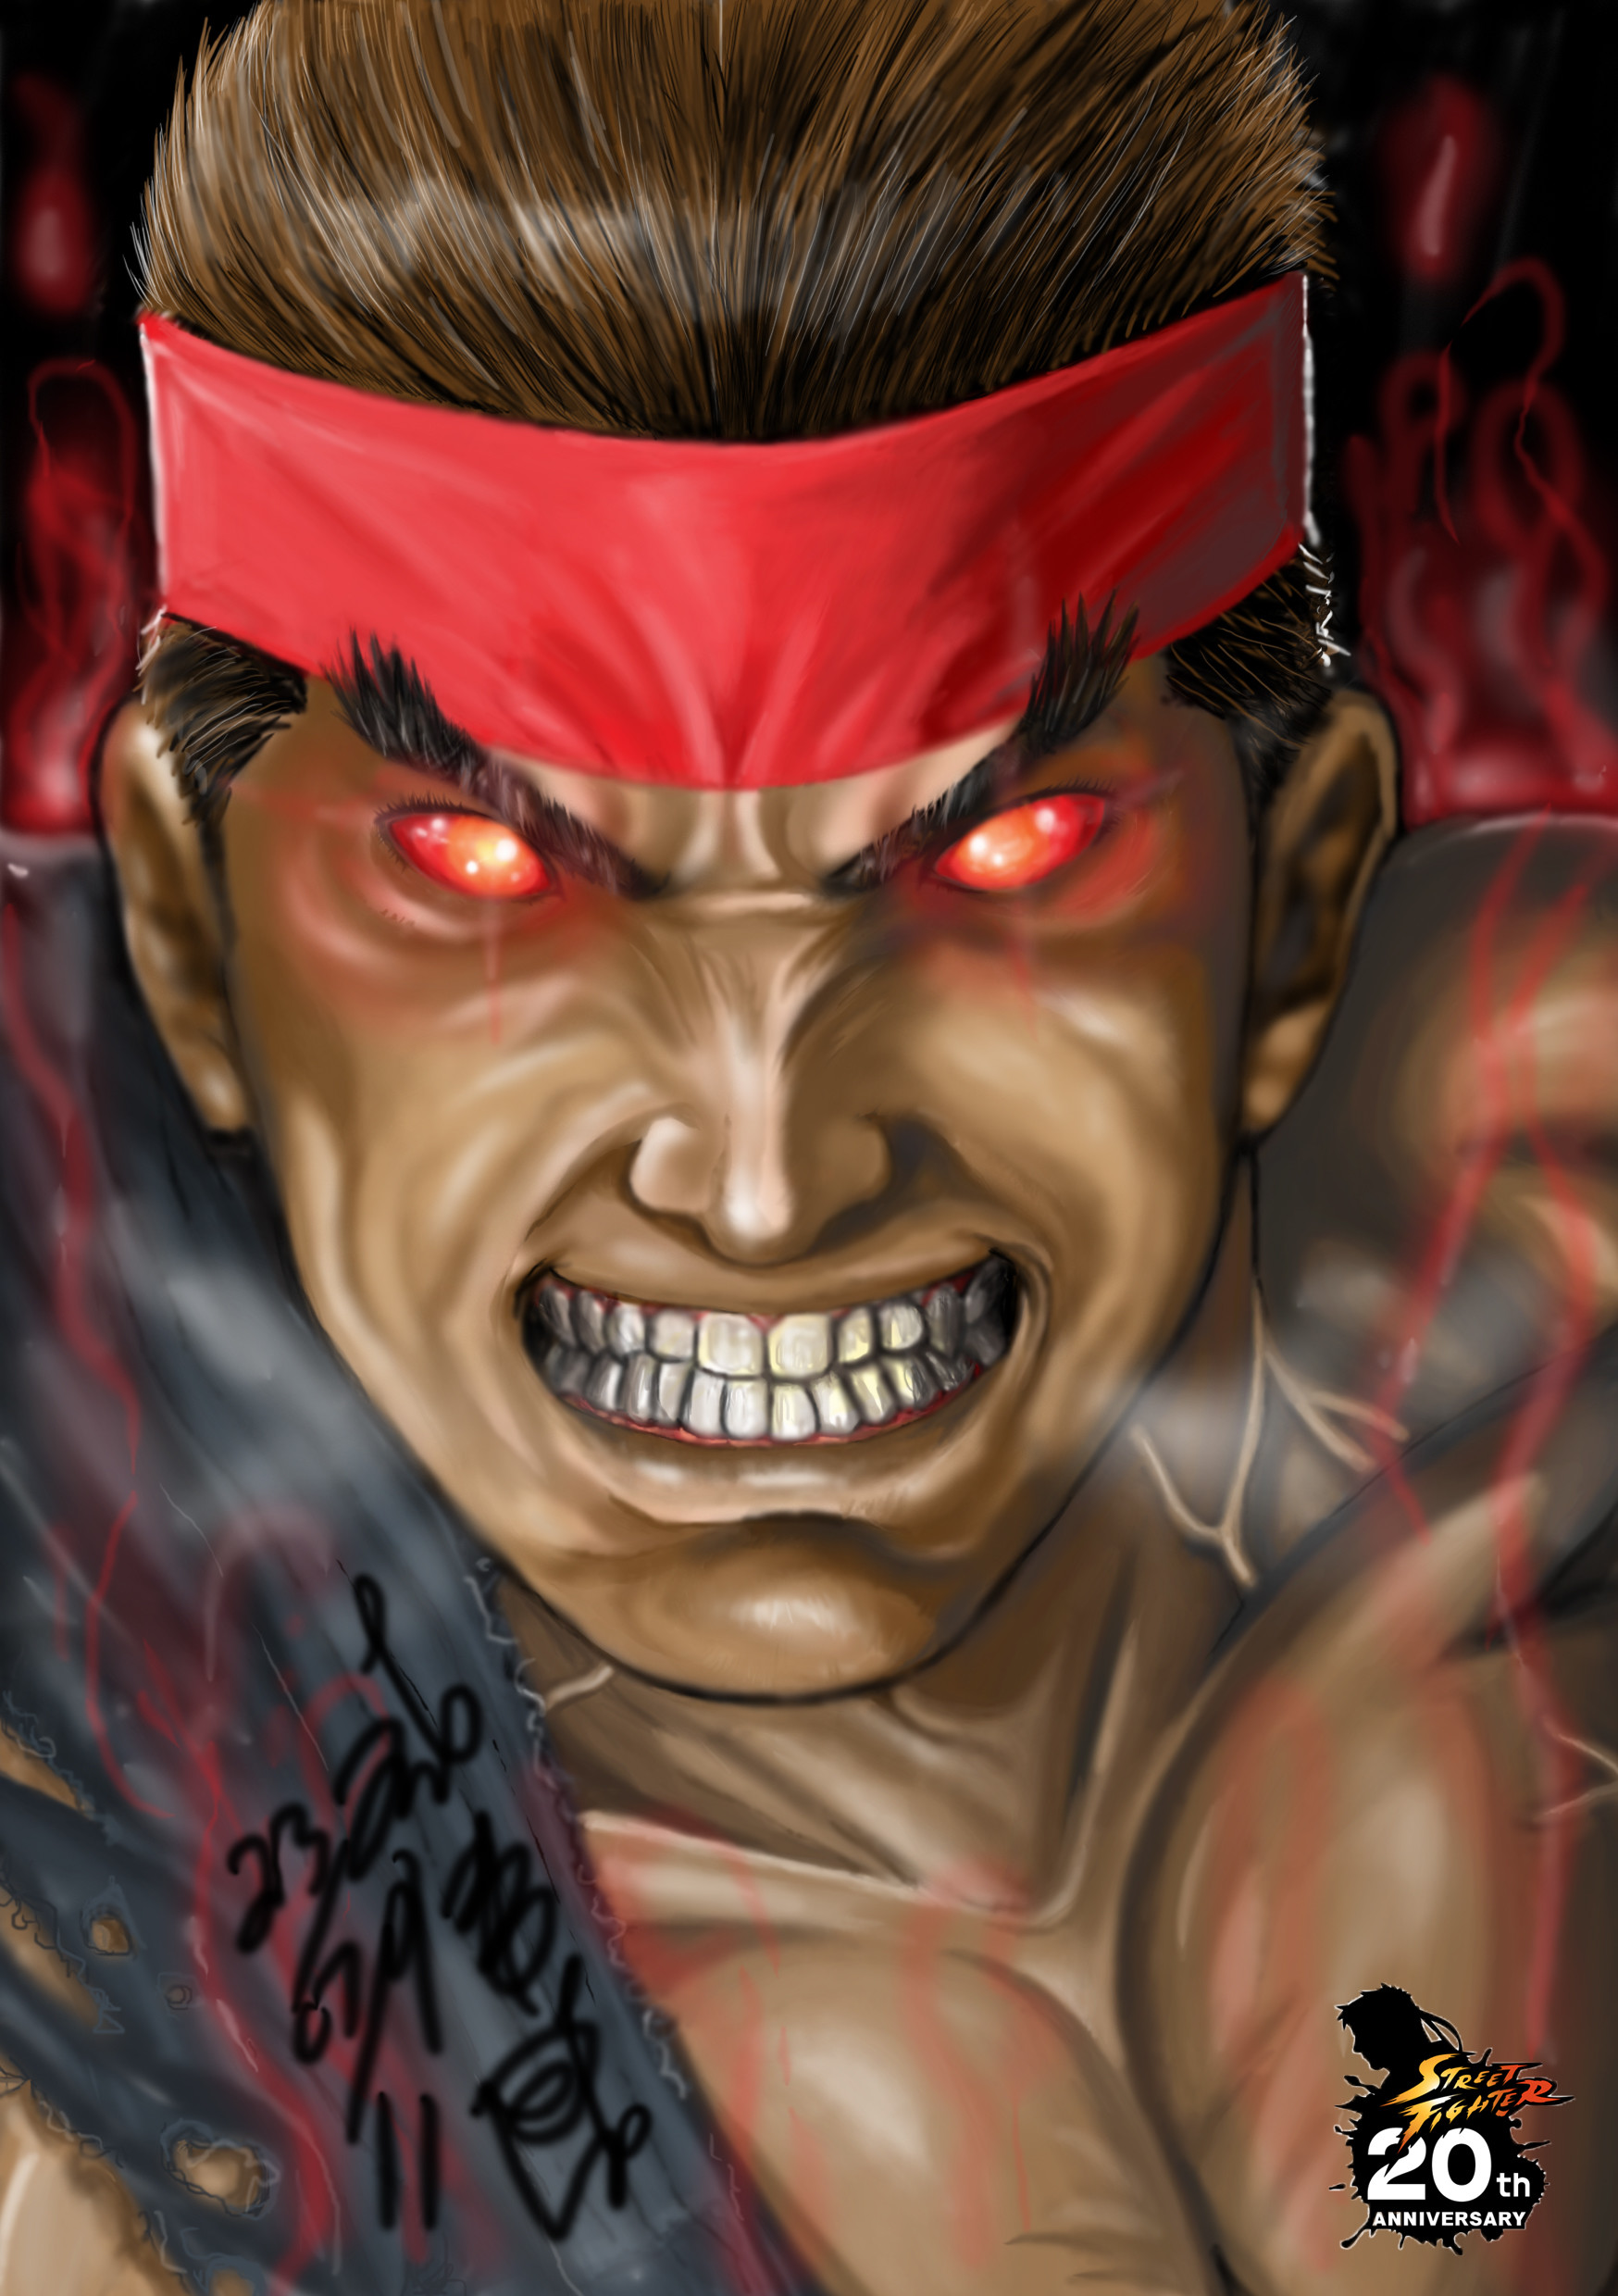 Res: 1748x2480, Street Fighter images evil ryu HD wallpaper and background photos